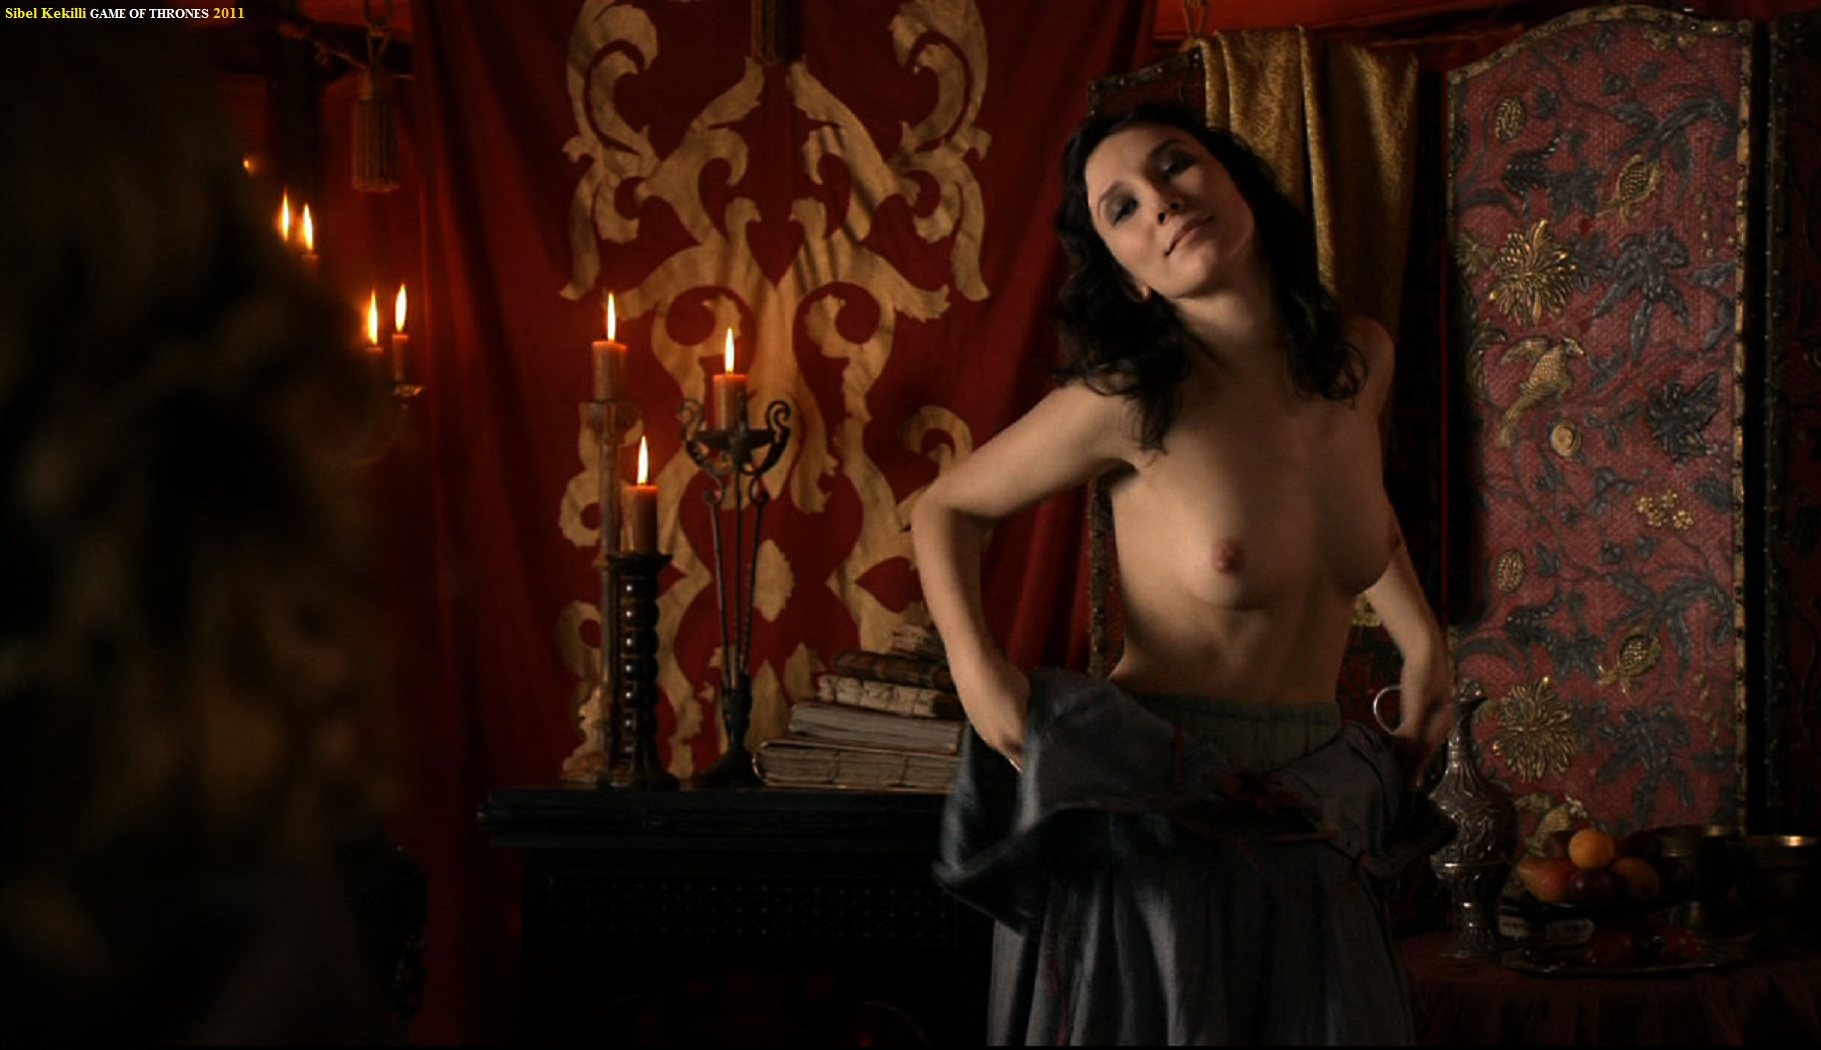 Kekilli thrones of sibel nude game apologise, but does